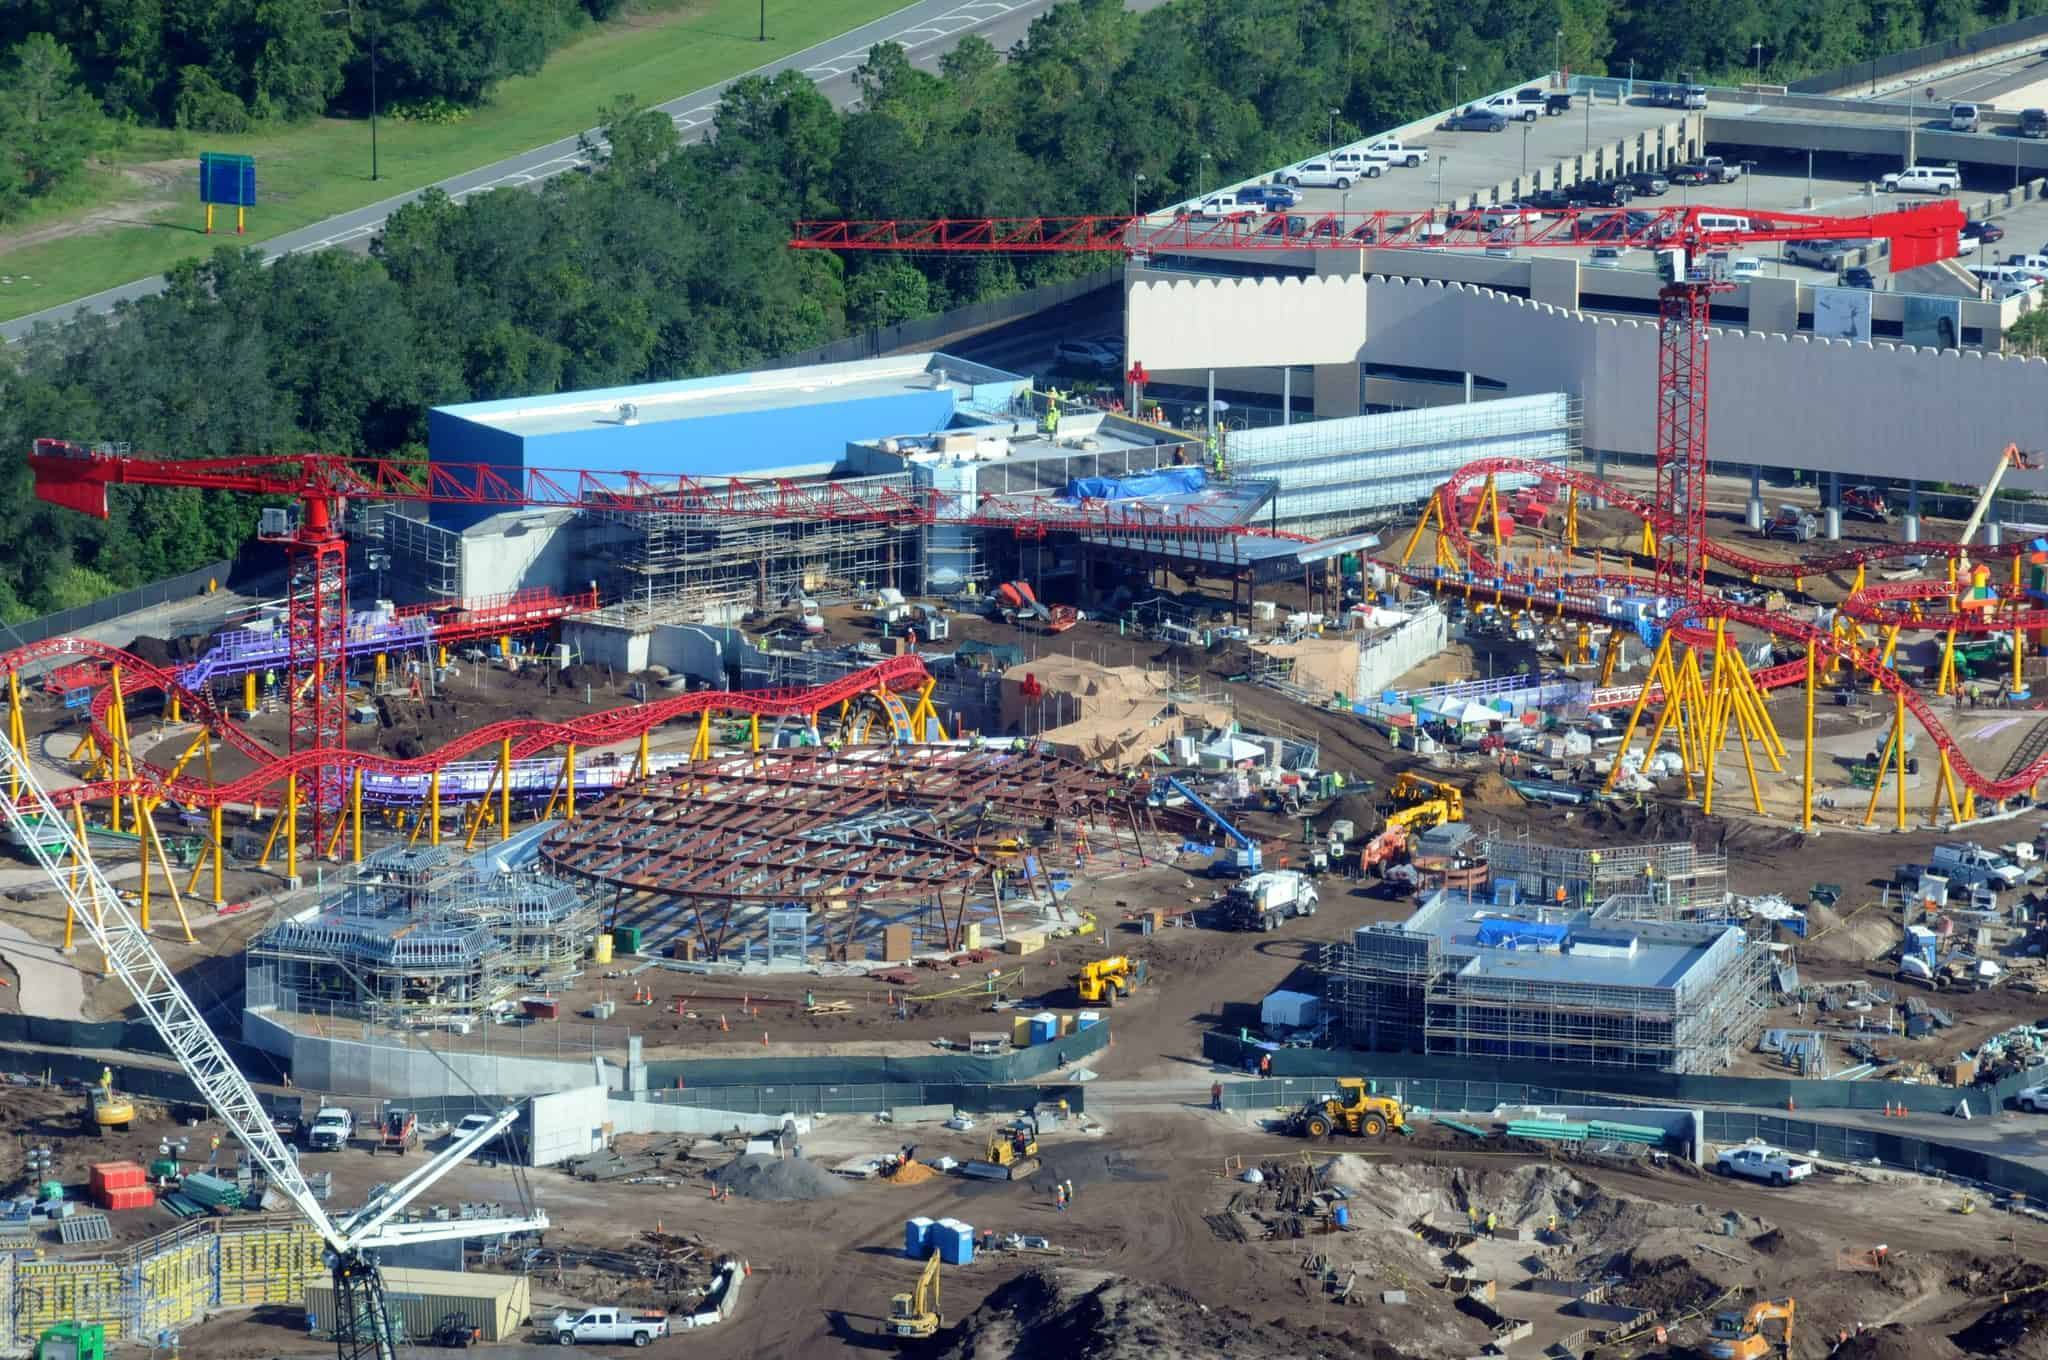 Hollywood Studios Builds Edge of the Galaxy & Toy Story Land